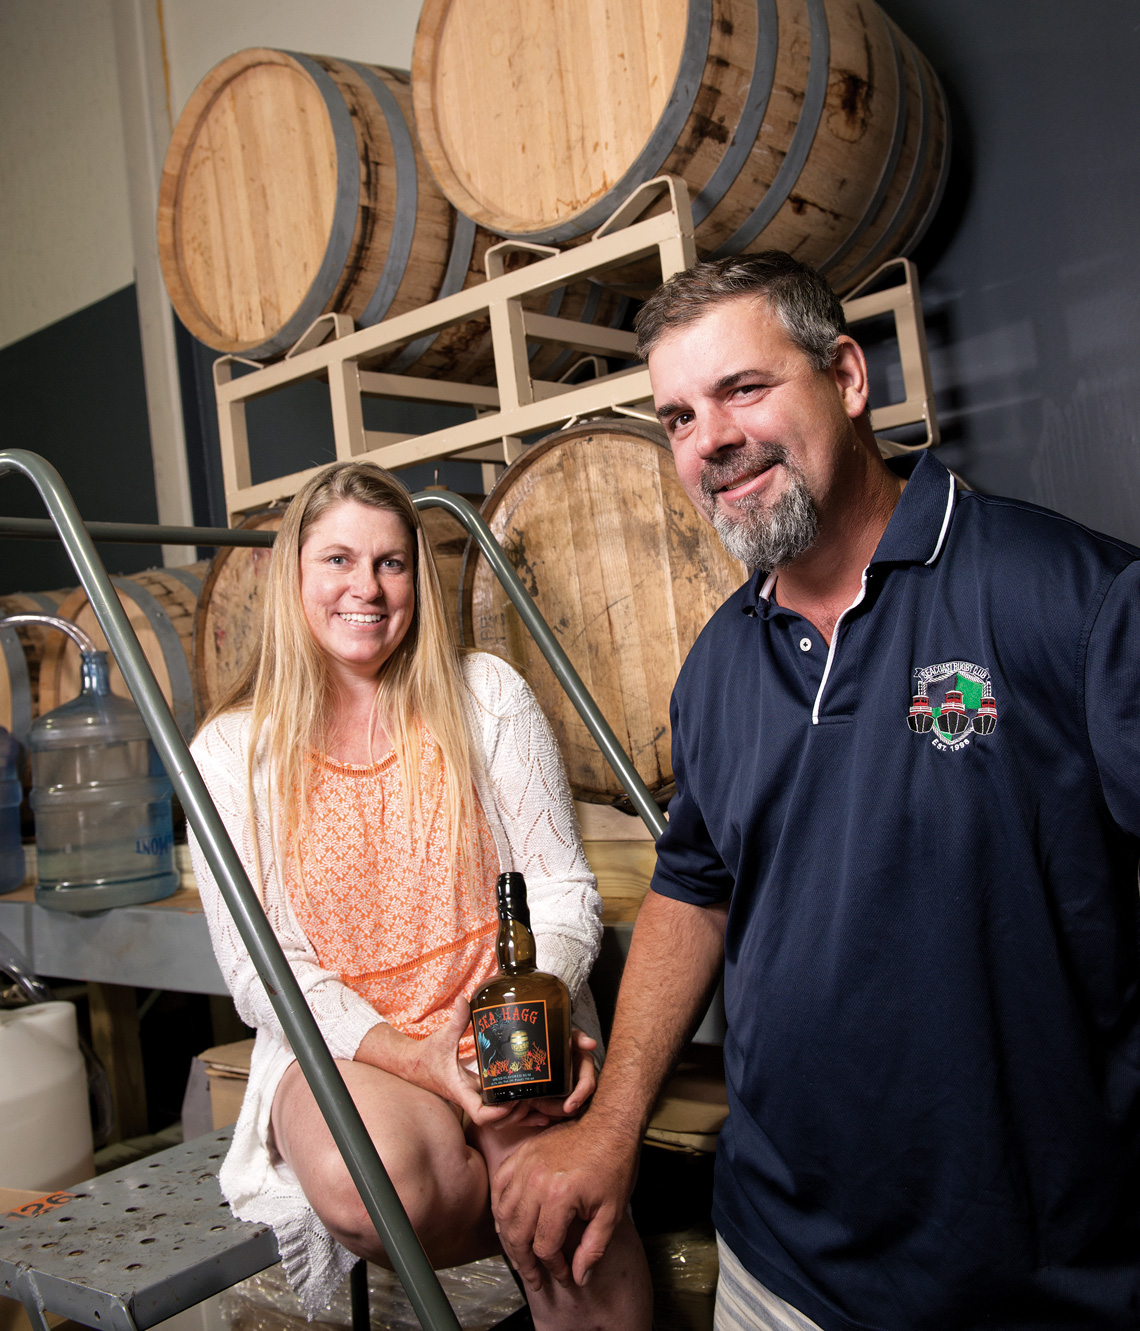 Sea Hagg owner Heather Hughes, left, with distiller Ron Vars inside of Sea Hagg's North Hampton, N.H., facility. Photos by Kevin Harkins.